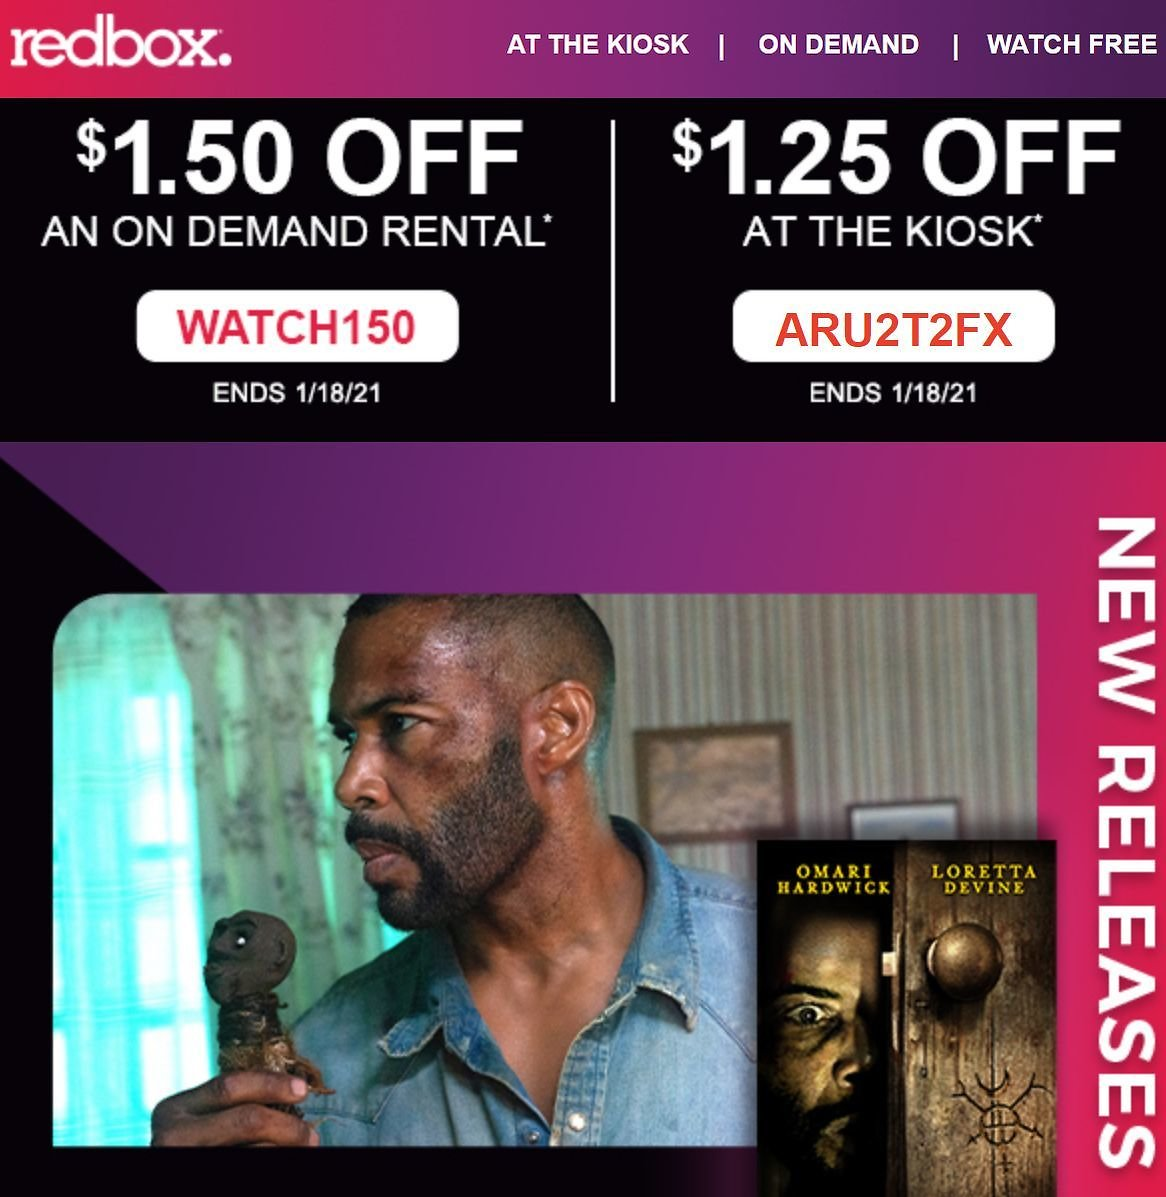 Redbox: $1.50 Off On-Demand Rental or $1.25 Off Disc Rental at the Kiosk